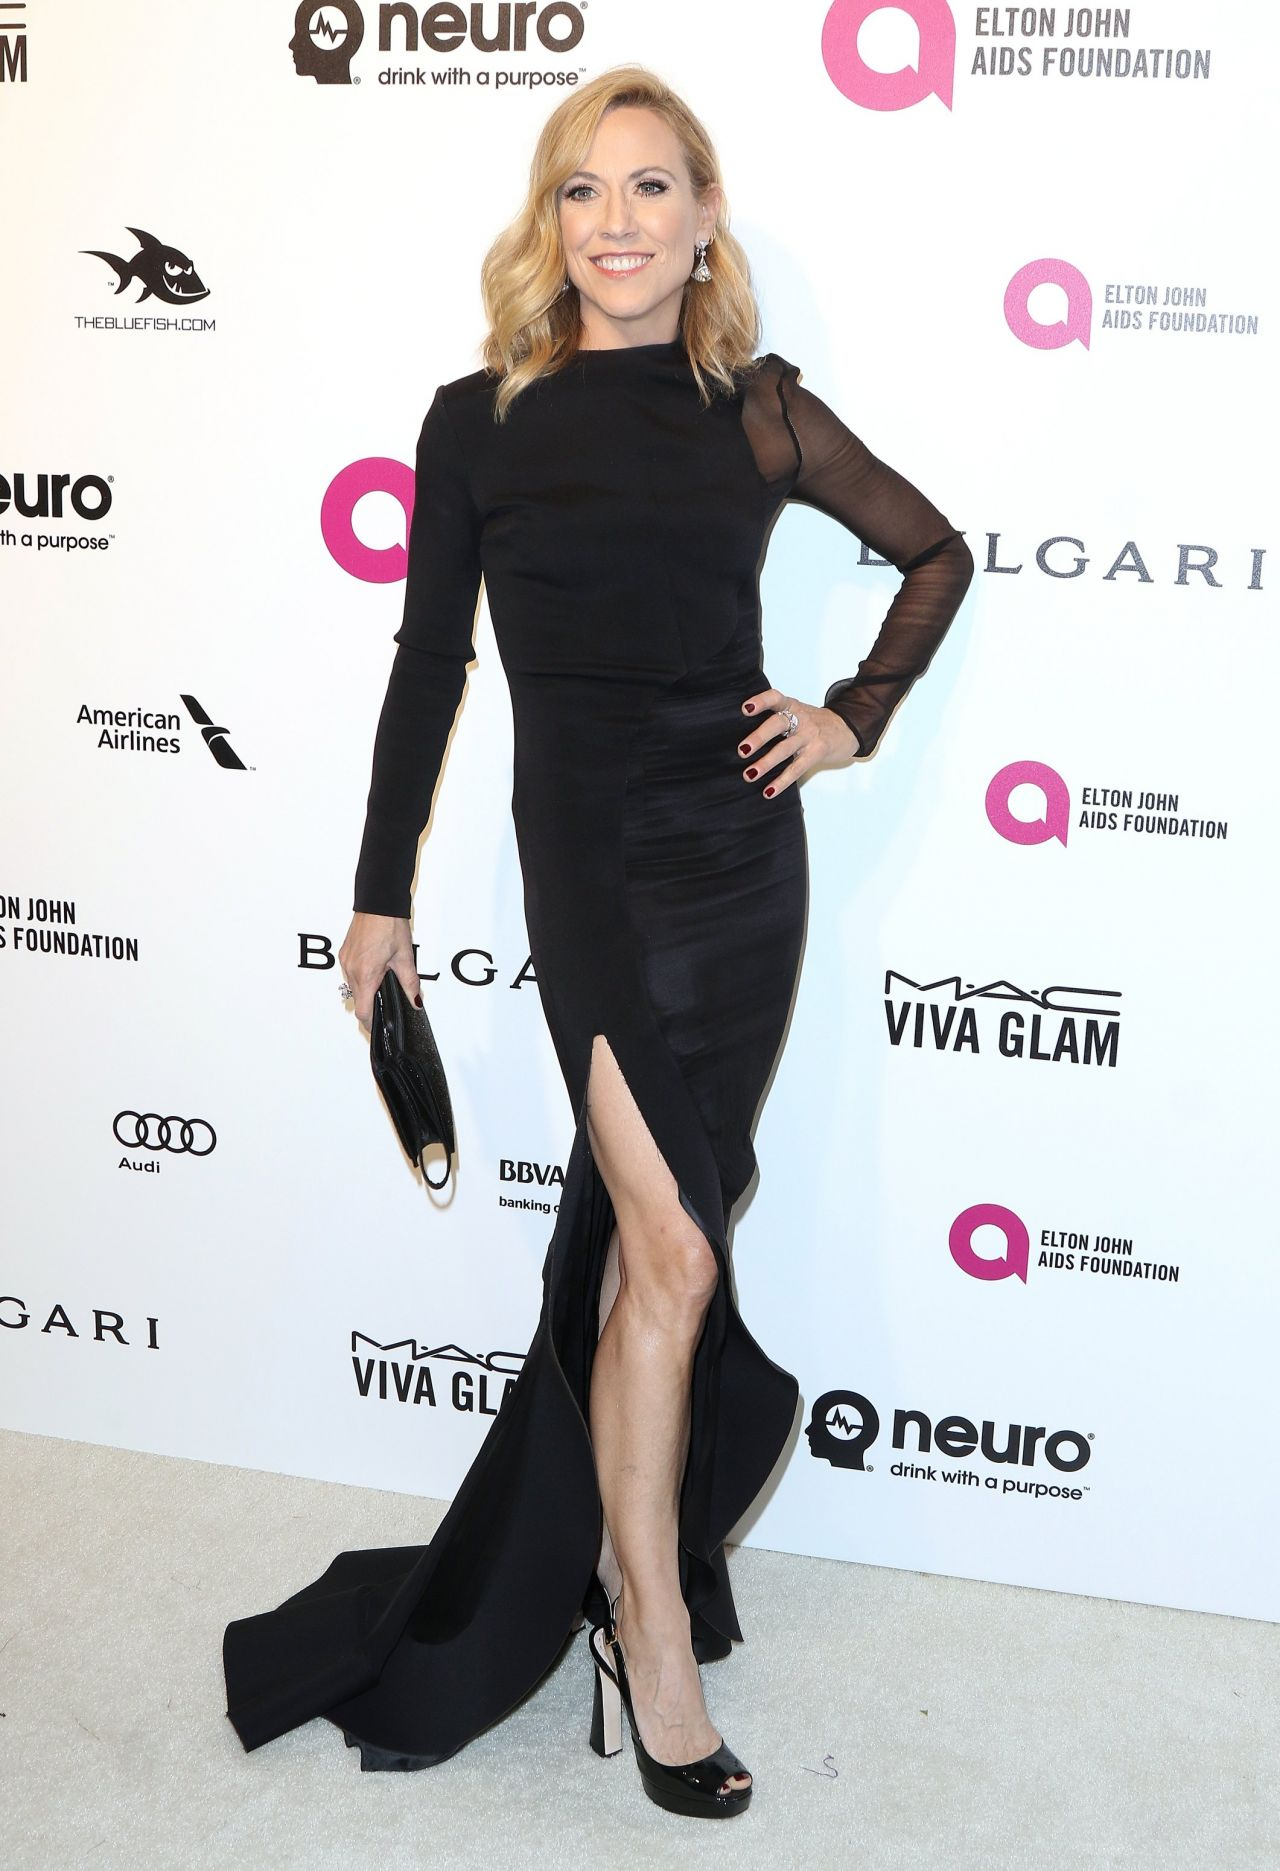 sheryl-crow-2016-elton-john-aids-foundation-s-oscar-viewing-party-in-west-hollywood-ca-2